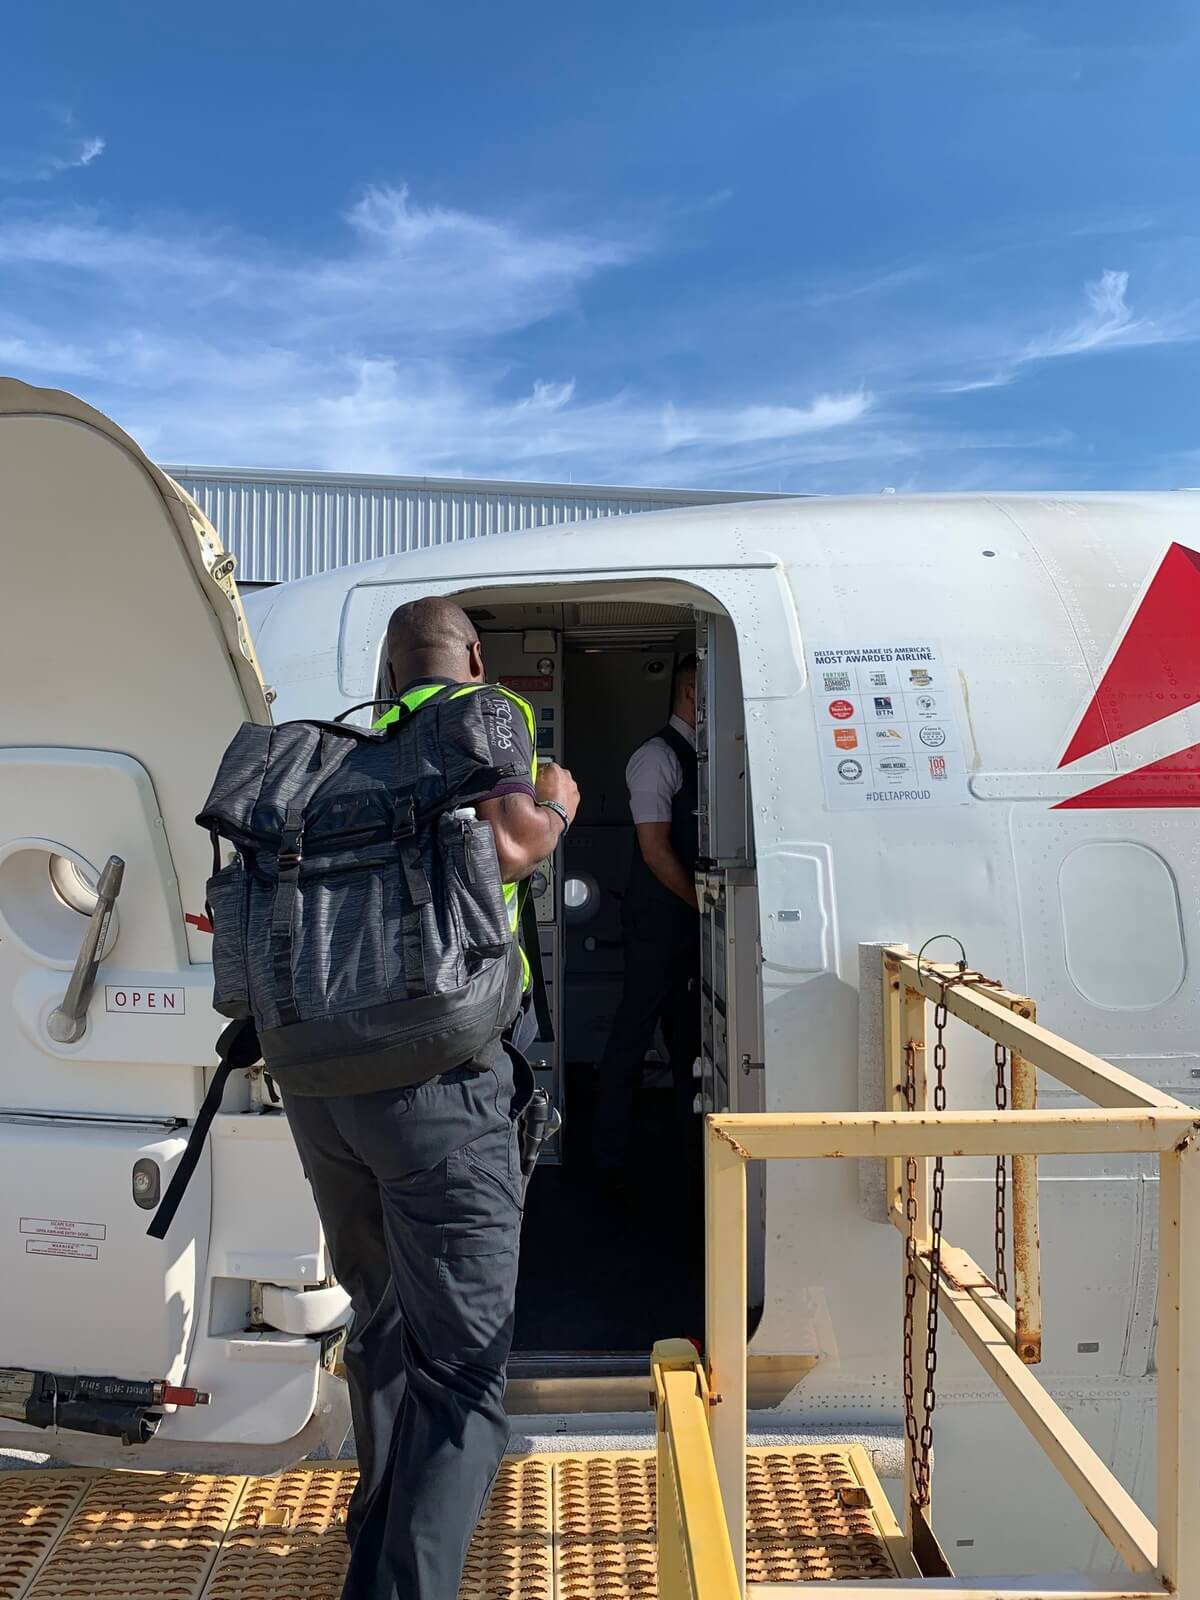 Delta relief flight to Bahamas evacuates Dorian survivors, delivers 4,700 pounds of supplies